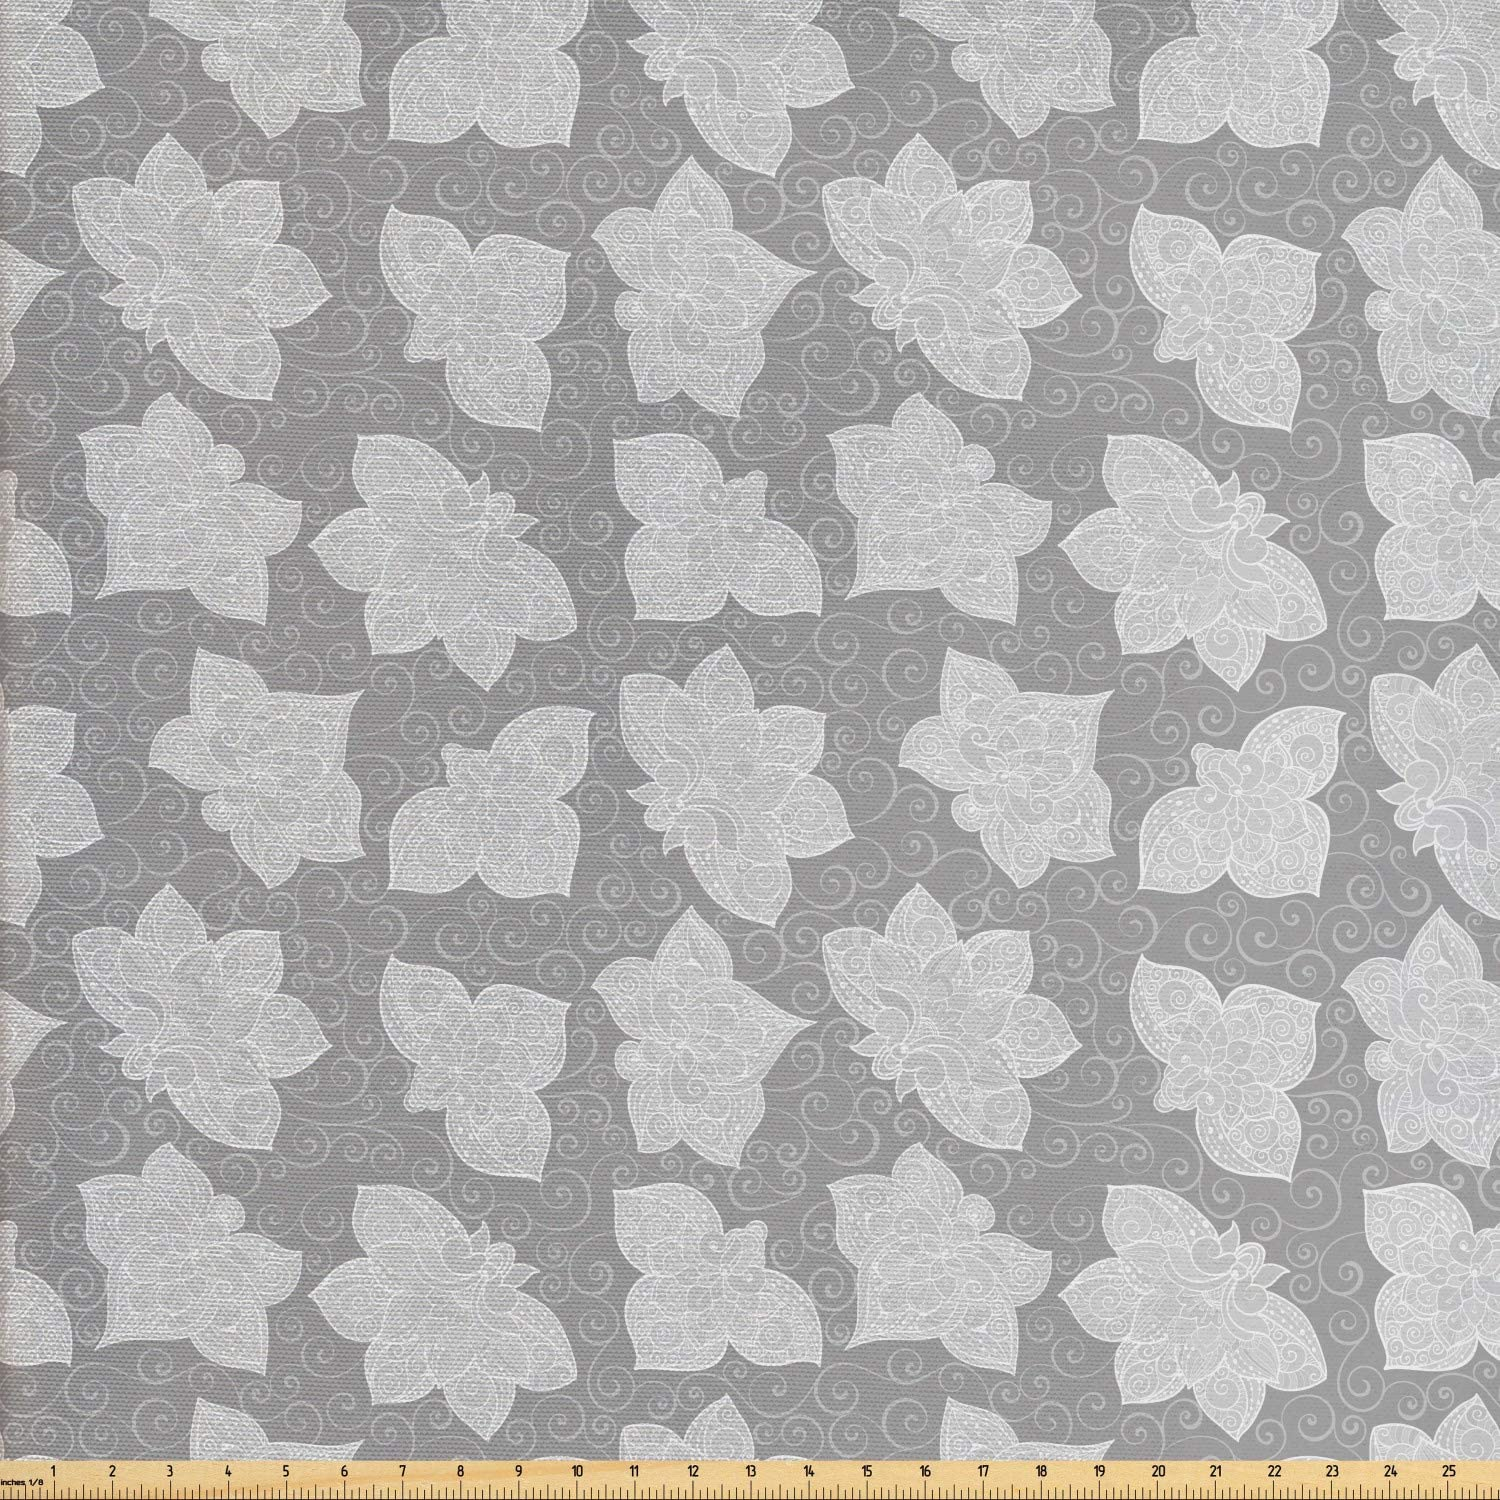 Ambesonne Floral Fabric by The Yard, Detailed Ornaments Curlicue Zentangle Style Bicolored Flowers Illustration, Decorative Fabric for Upholstery and Home Accents, 1 Yard, Pale Grey and Pearl